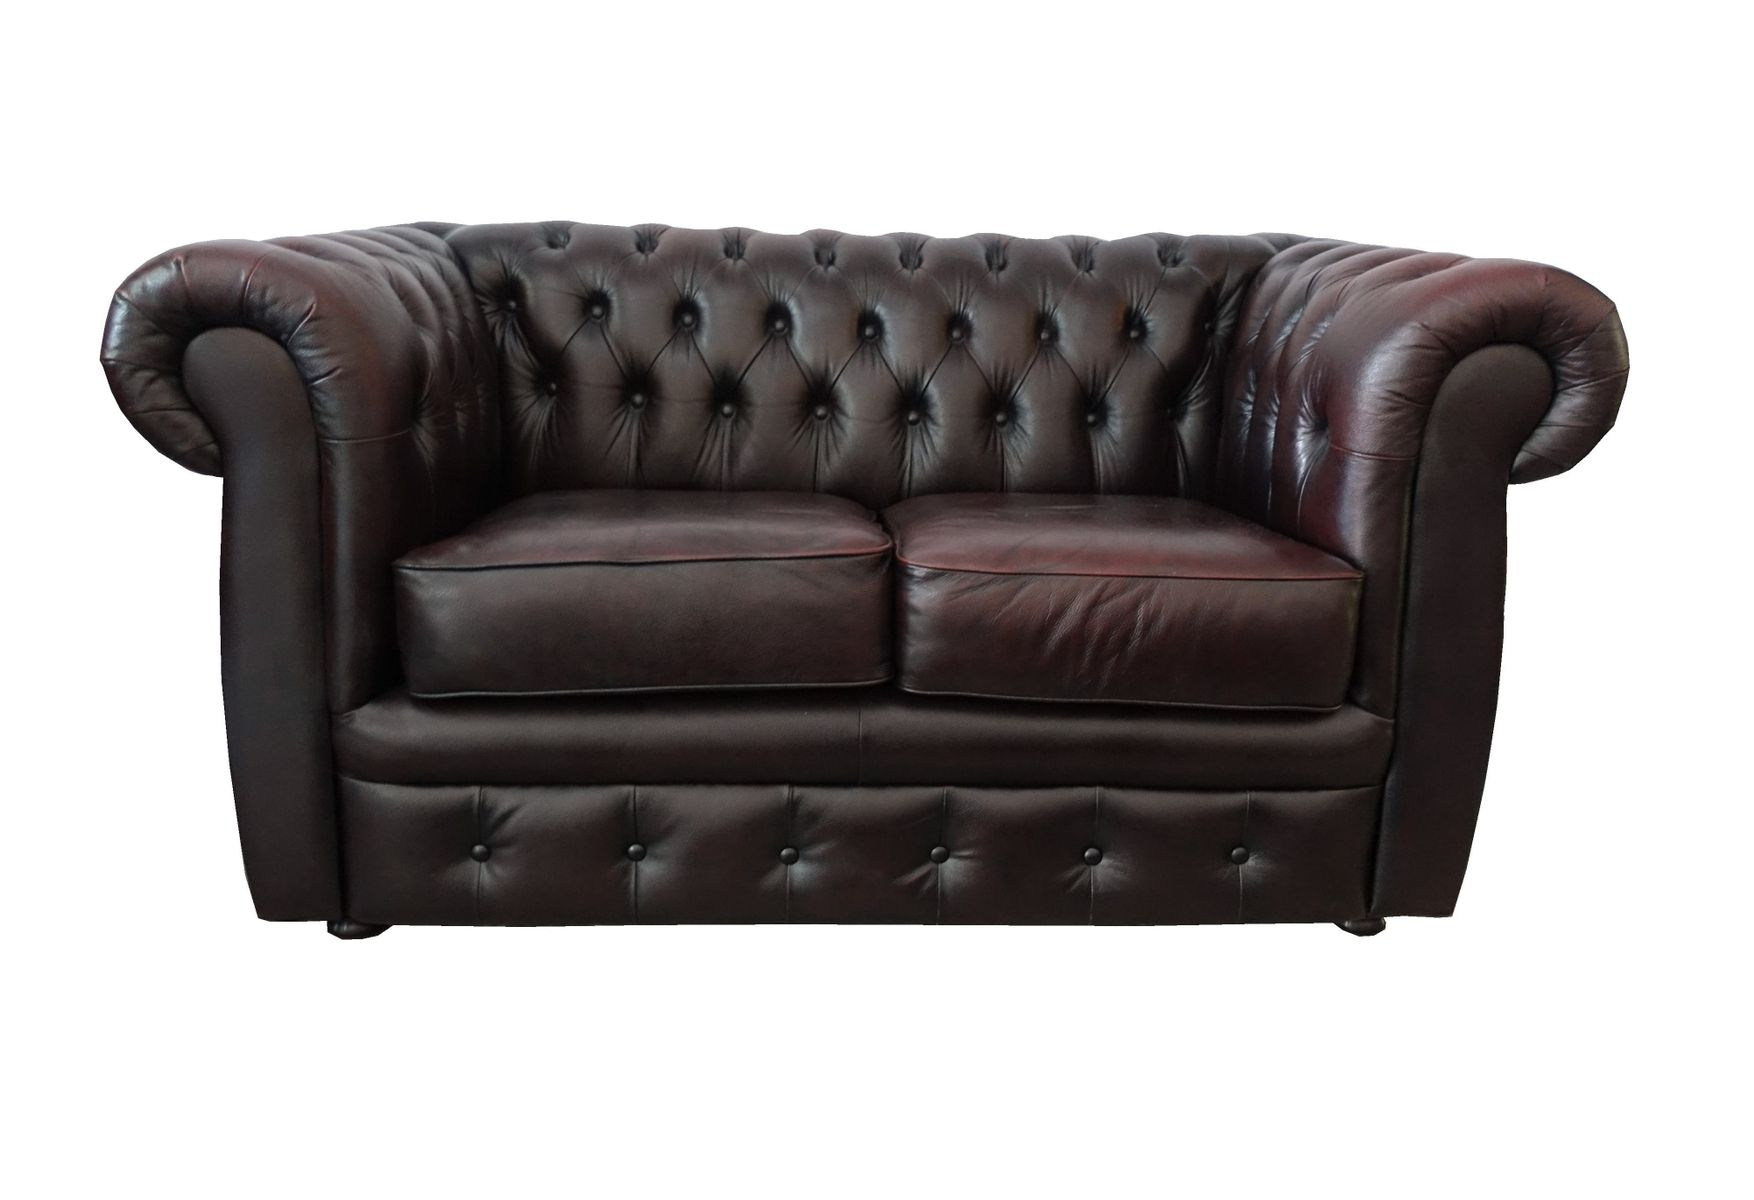 Quilted Leather Sofa Quilt By Tacchini Design